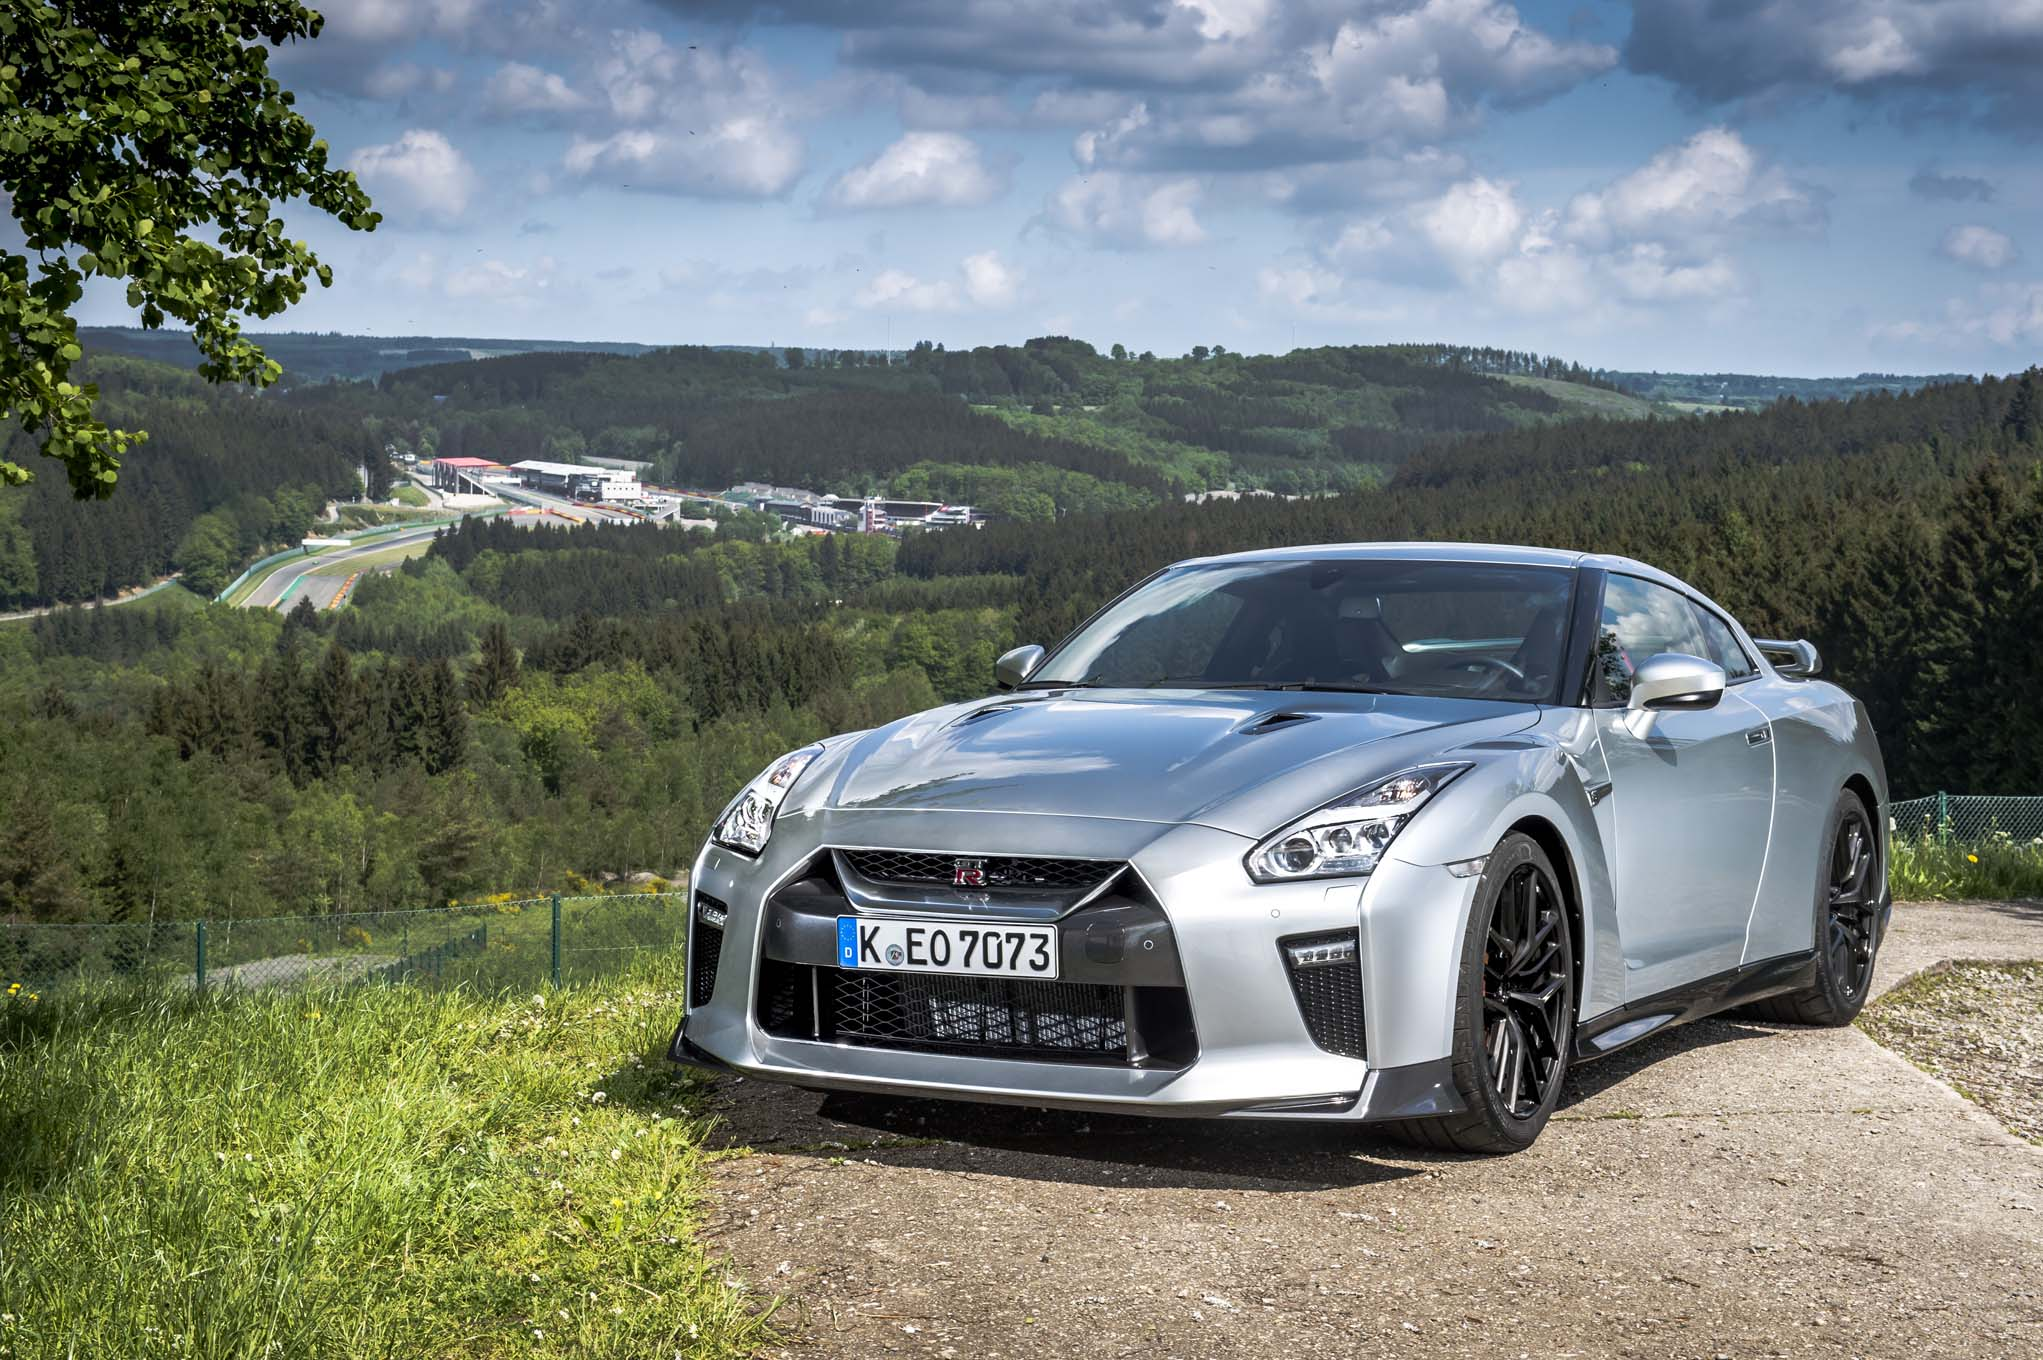 2017 Nissan Gt R Msrp >> 2017 Nissan GT-R First Drive Review